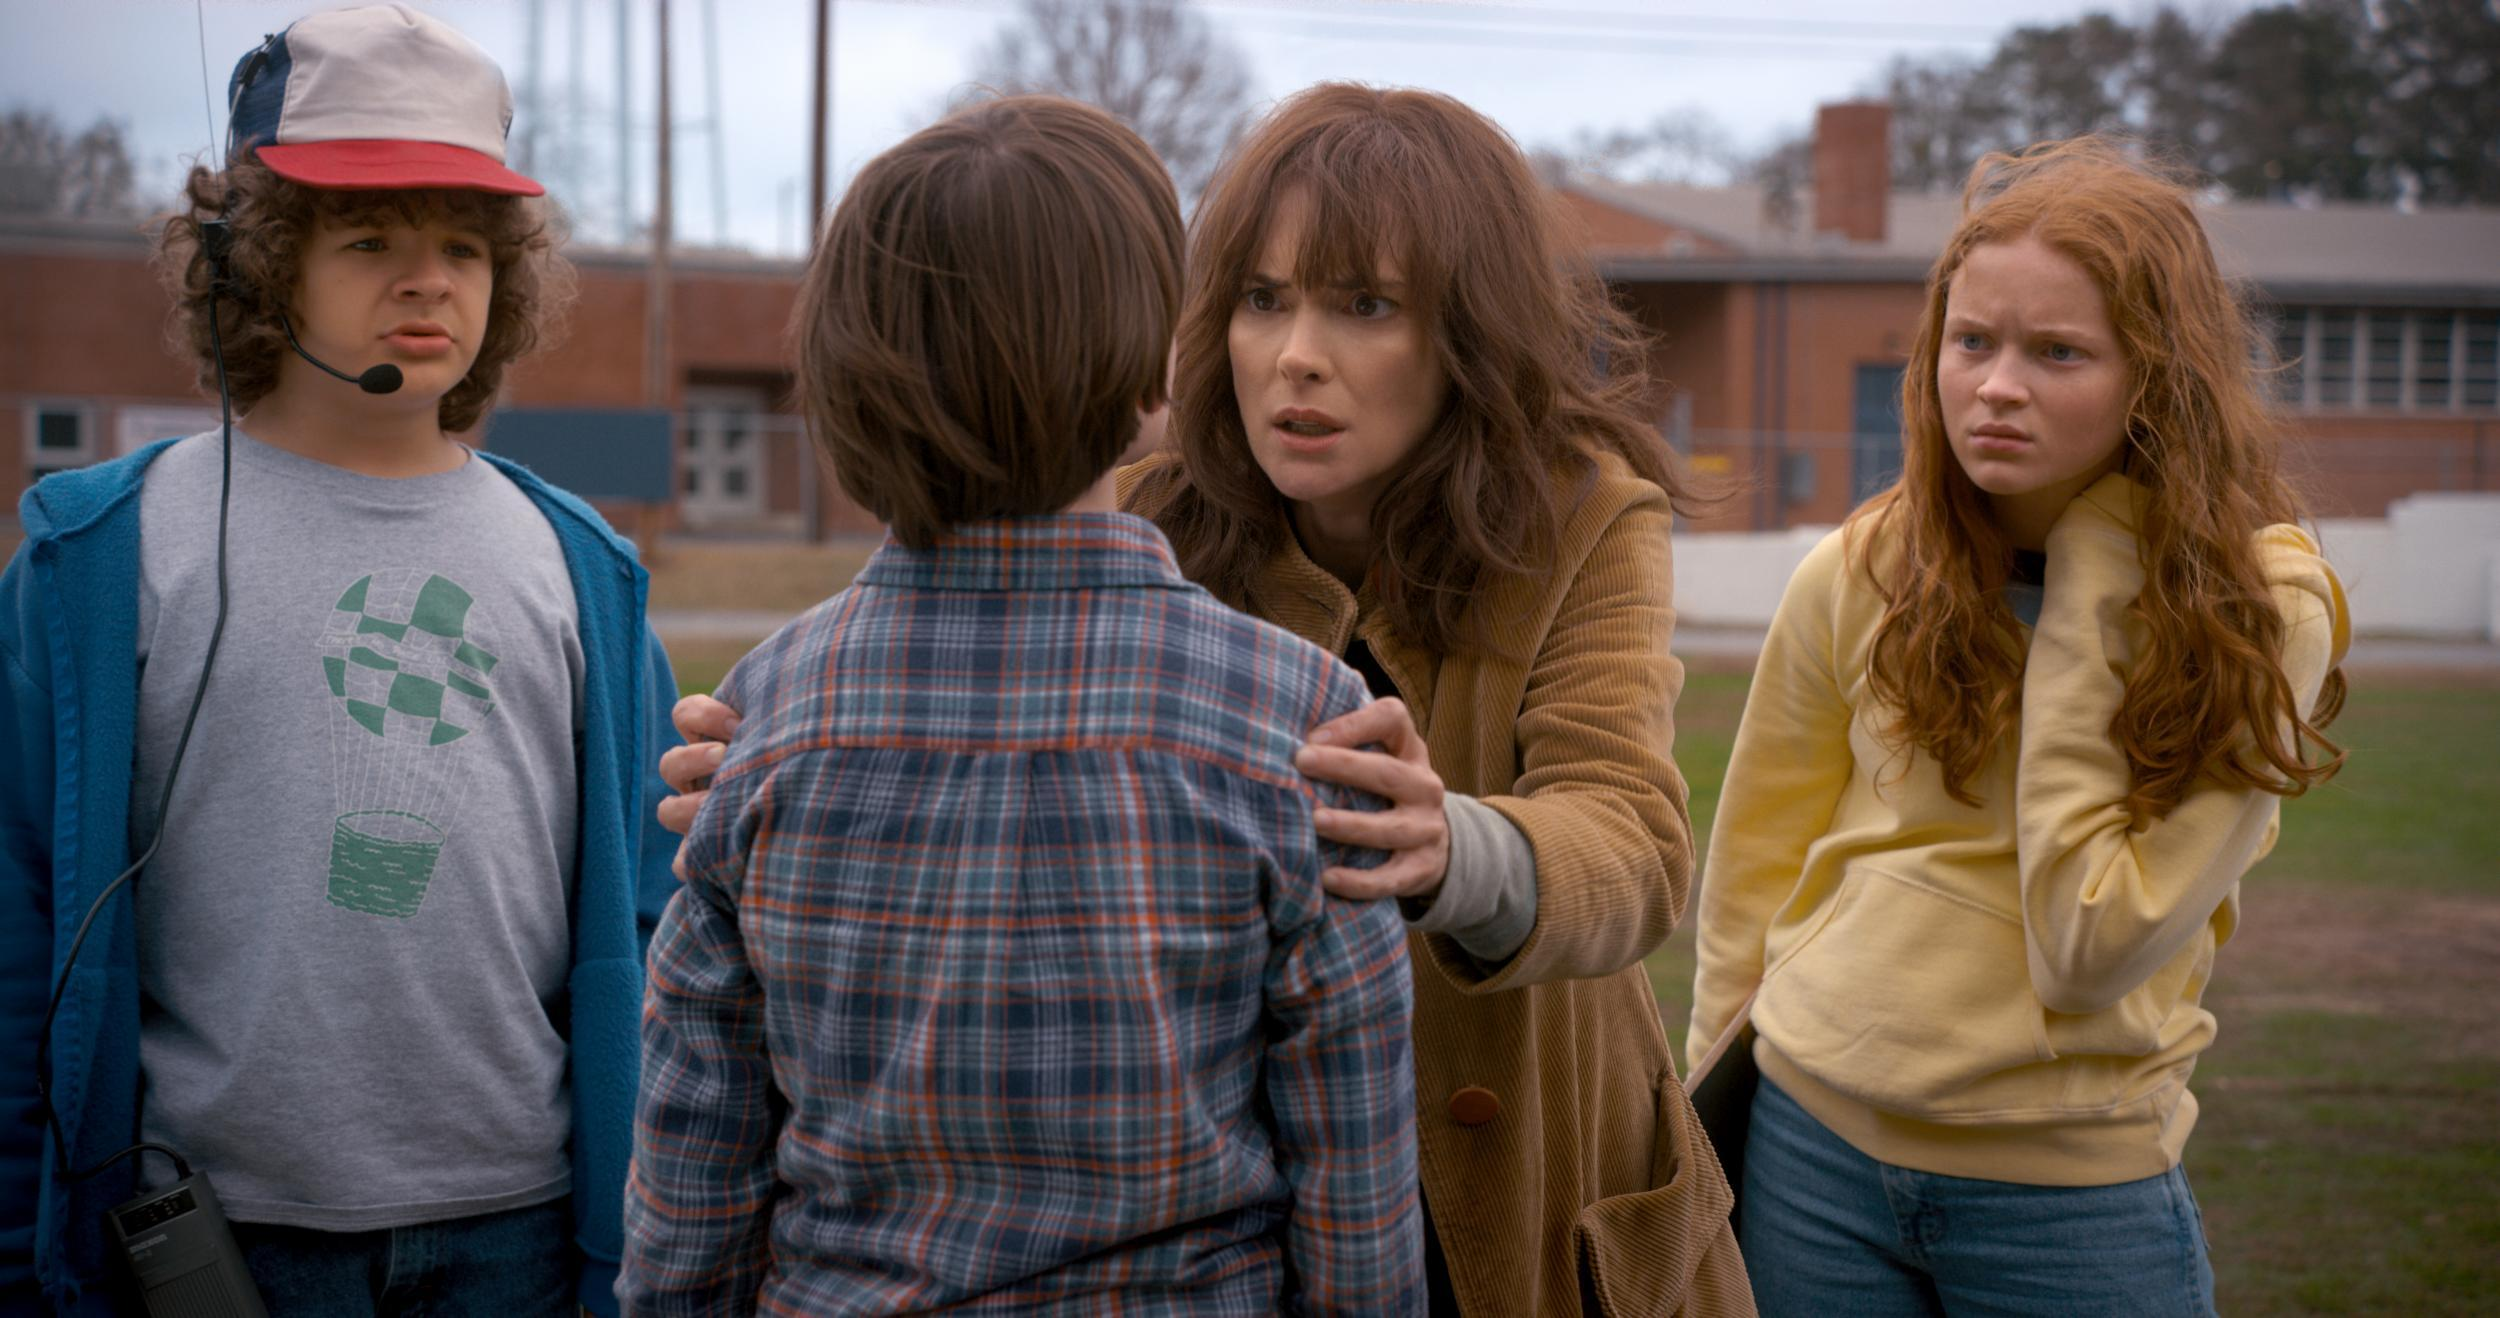 https://static.independent.co.uk/s3fs-public/thumbnails/image/2017/05/03/11/stranger-things-season-2.jpg